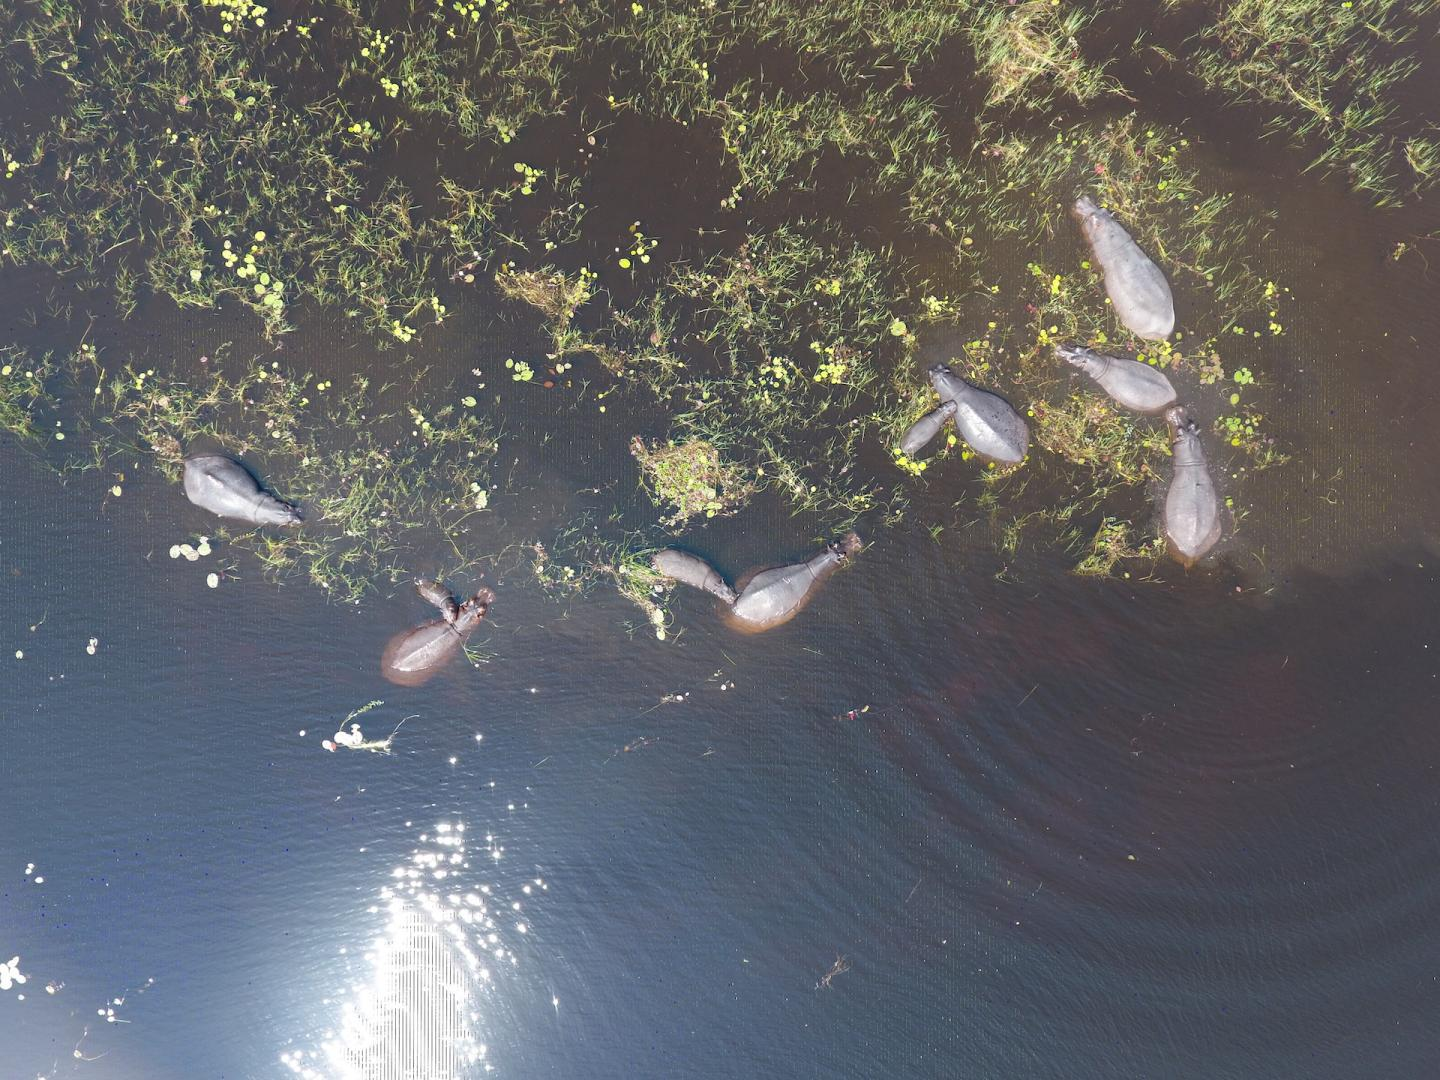 Aerial Image of Hippos Taken from a Drone 1/2